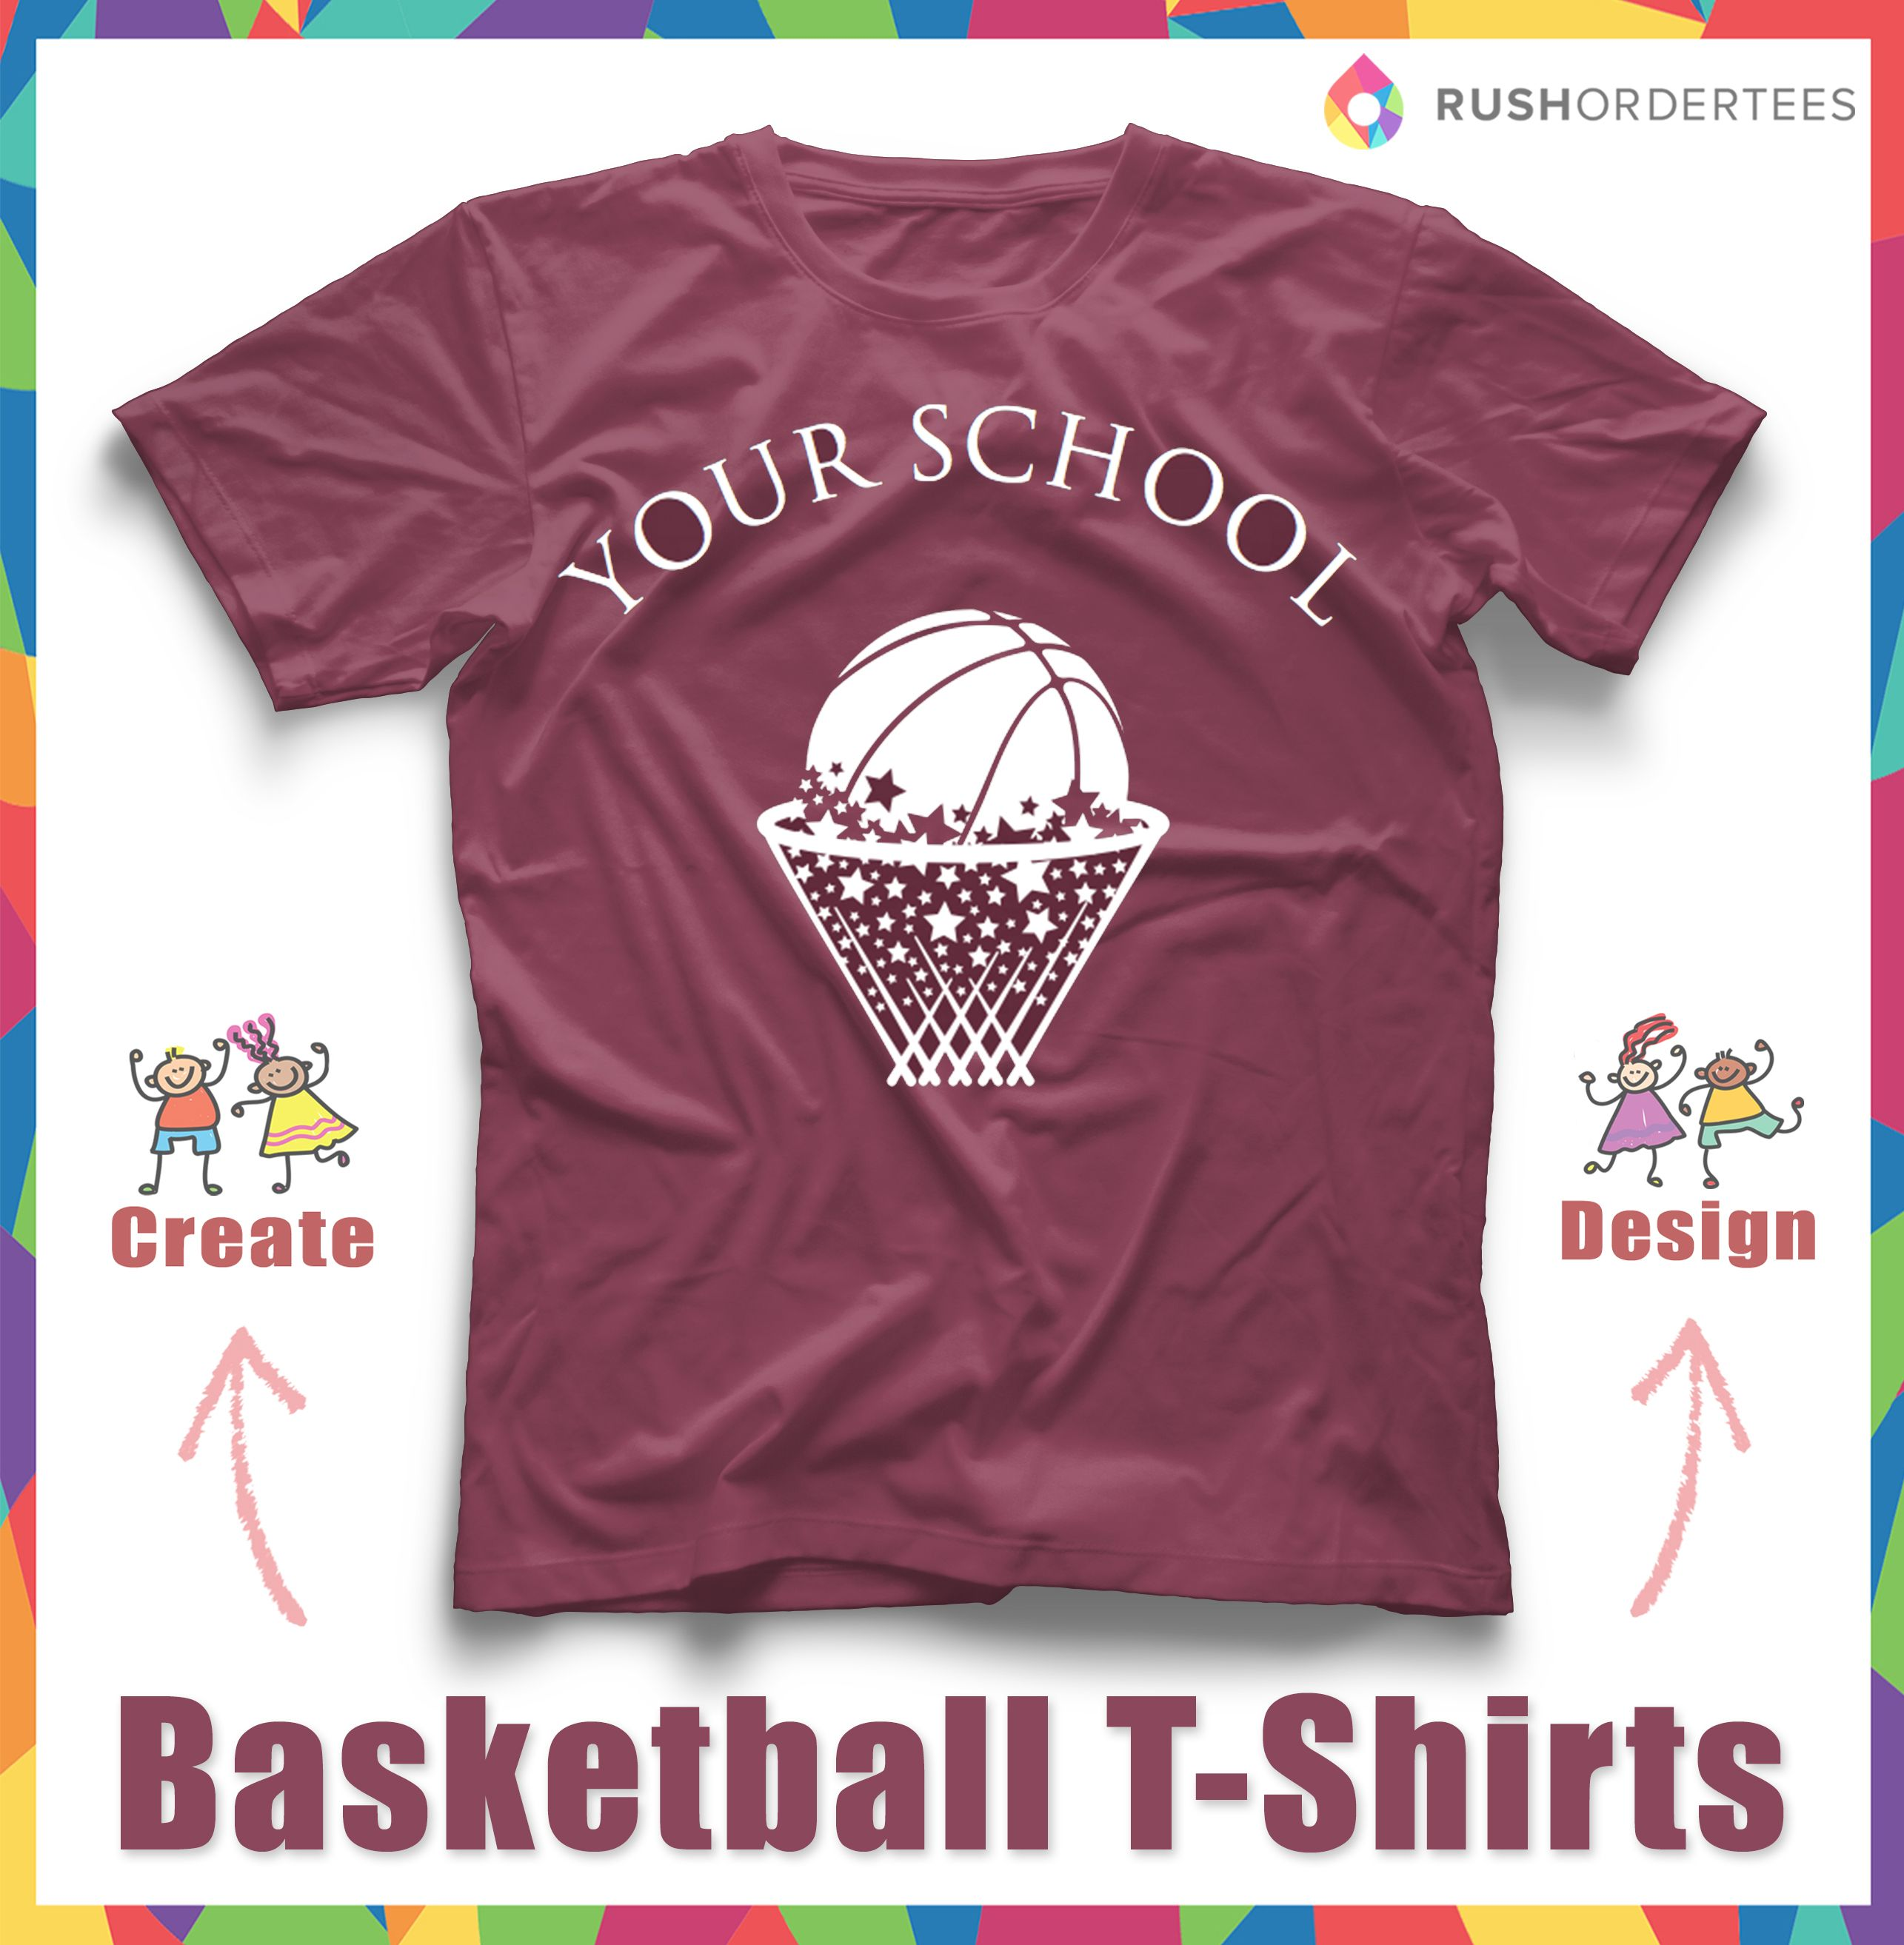 Design t shirt easy - Create A Custom Basketball Custom T Shirt In Our Easy To Use Design